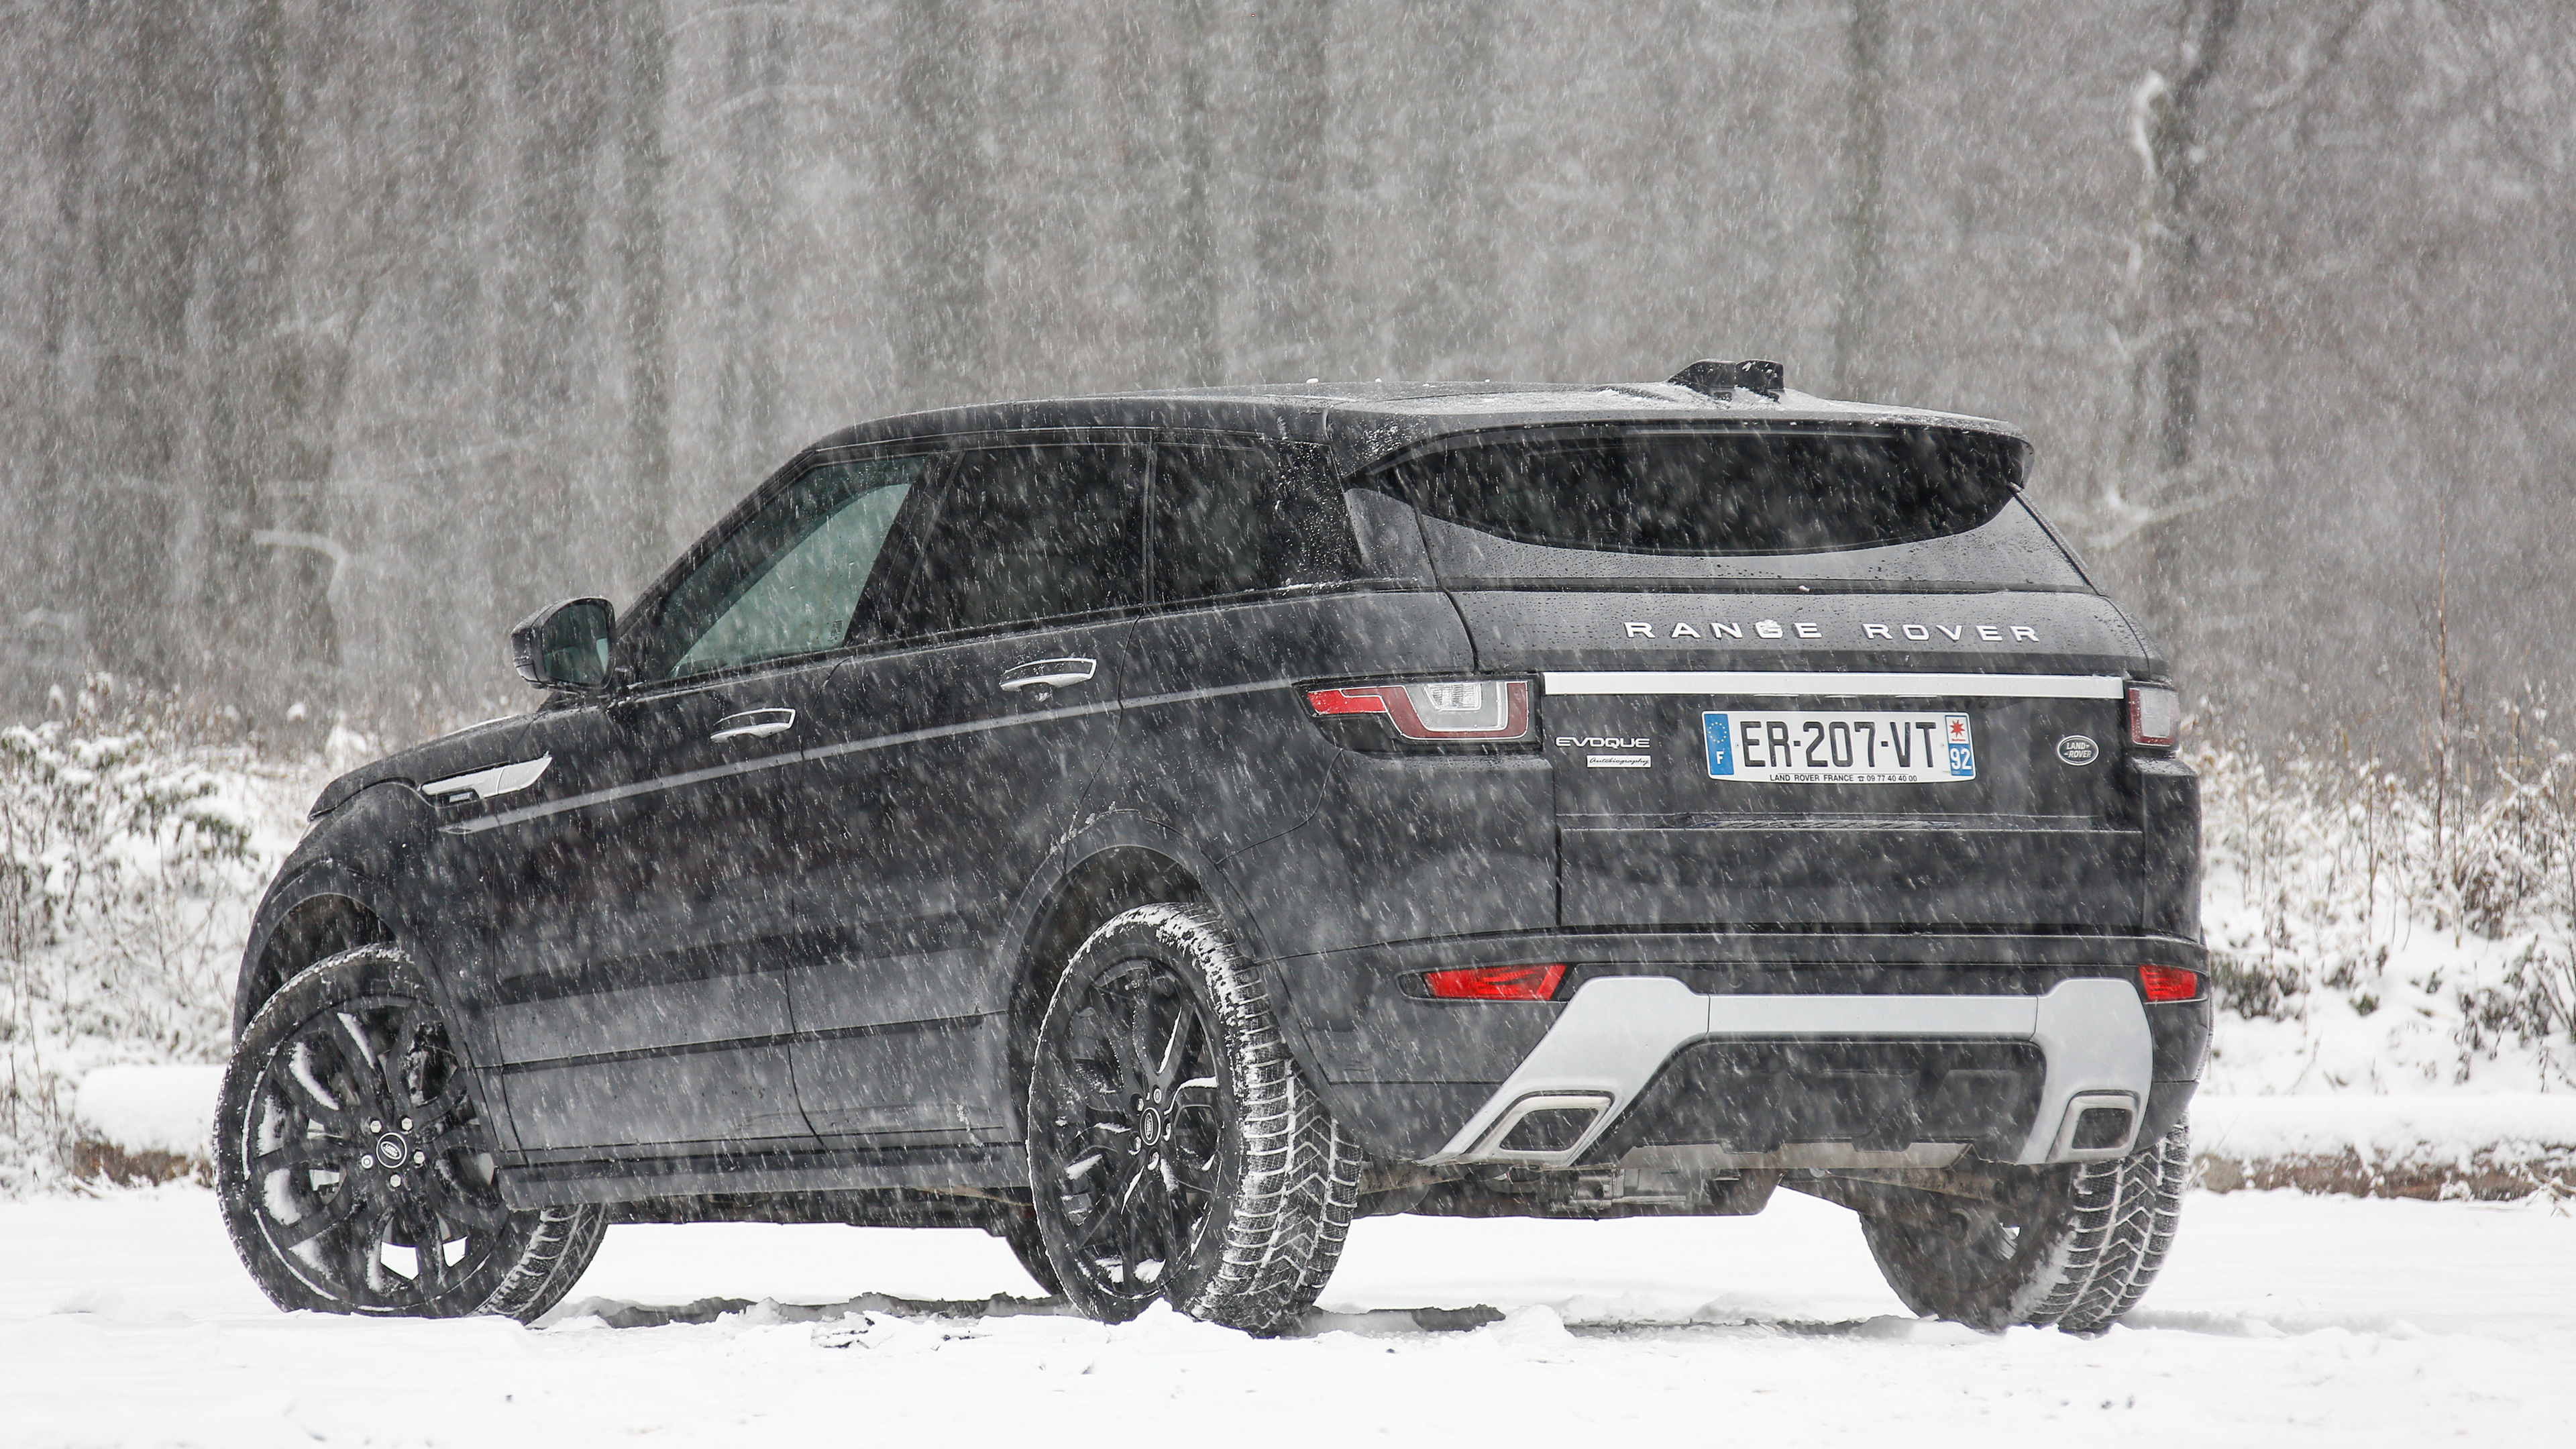 range rover evoque autobiography si4 back view 1539108774 - Range Rover Evoque Autobiography Si4 Back View - range rover wallpapers, range rover evoque wallpapers, hd-wallpapers, cars wallpapers, 4k-wallpapers, 2018 cars wallpapers